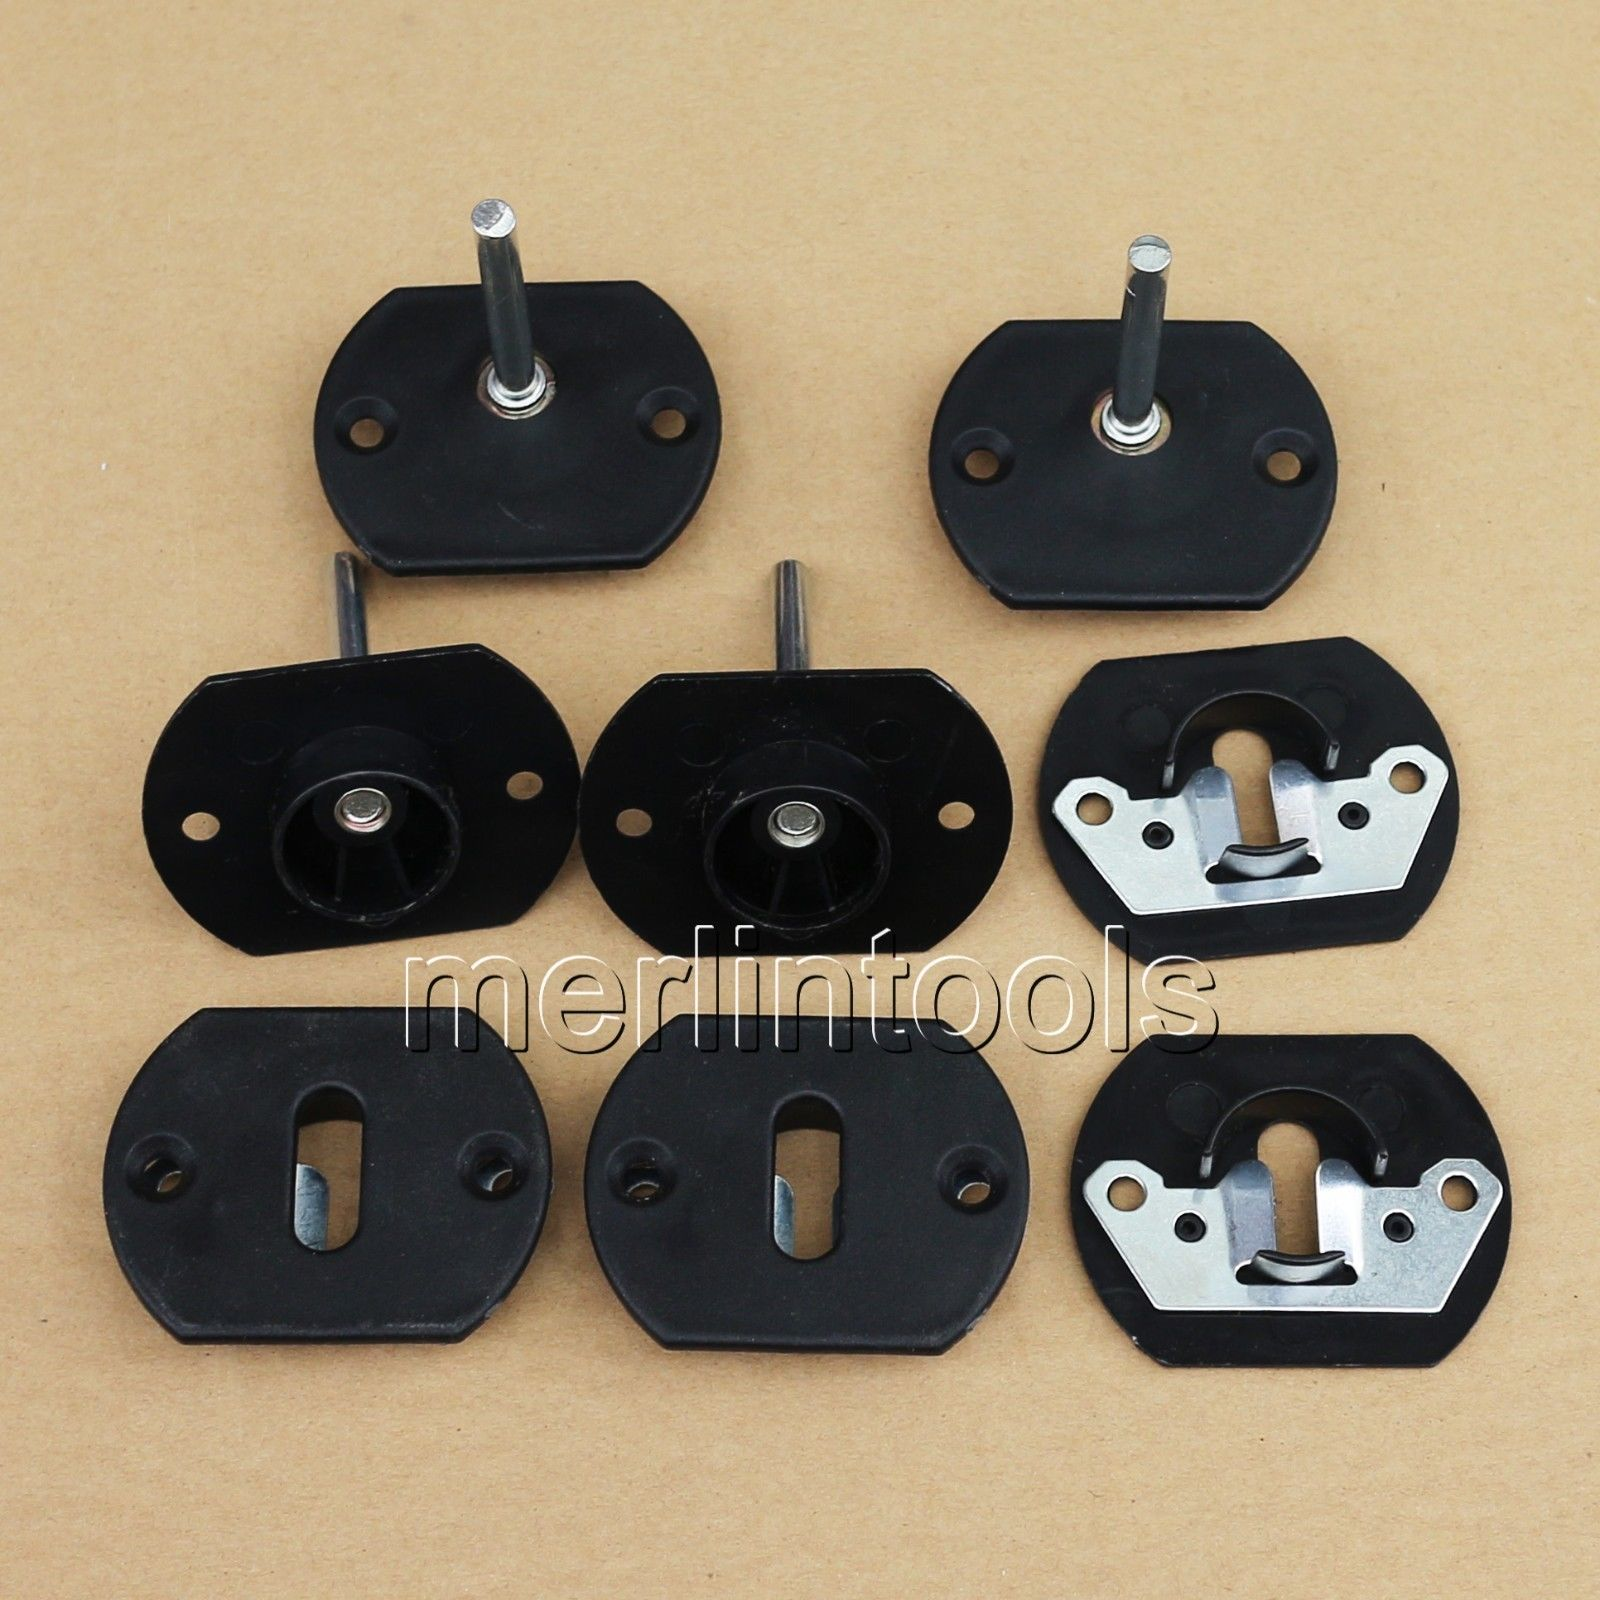 4 x Sets Sofa Couch Sectional Furniture Connector Pin Sty : sectional couch connector - Sectionals, Sofas & Couches